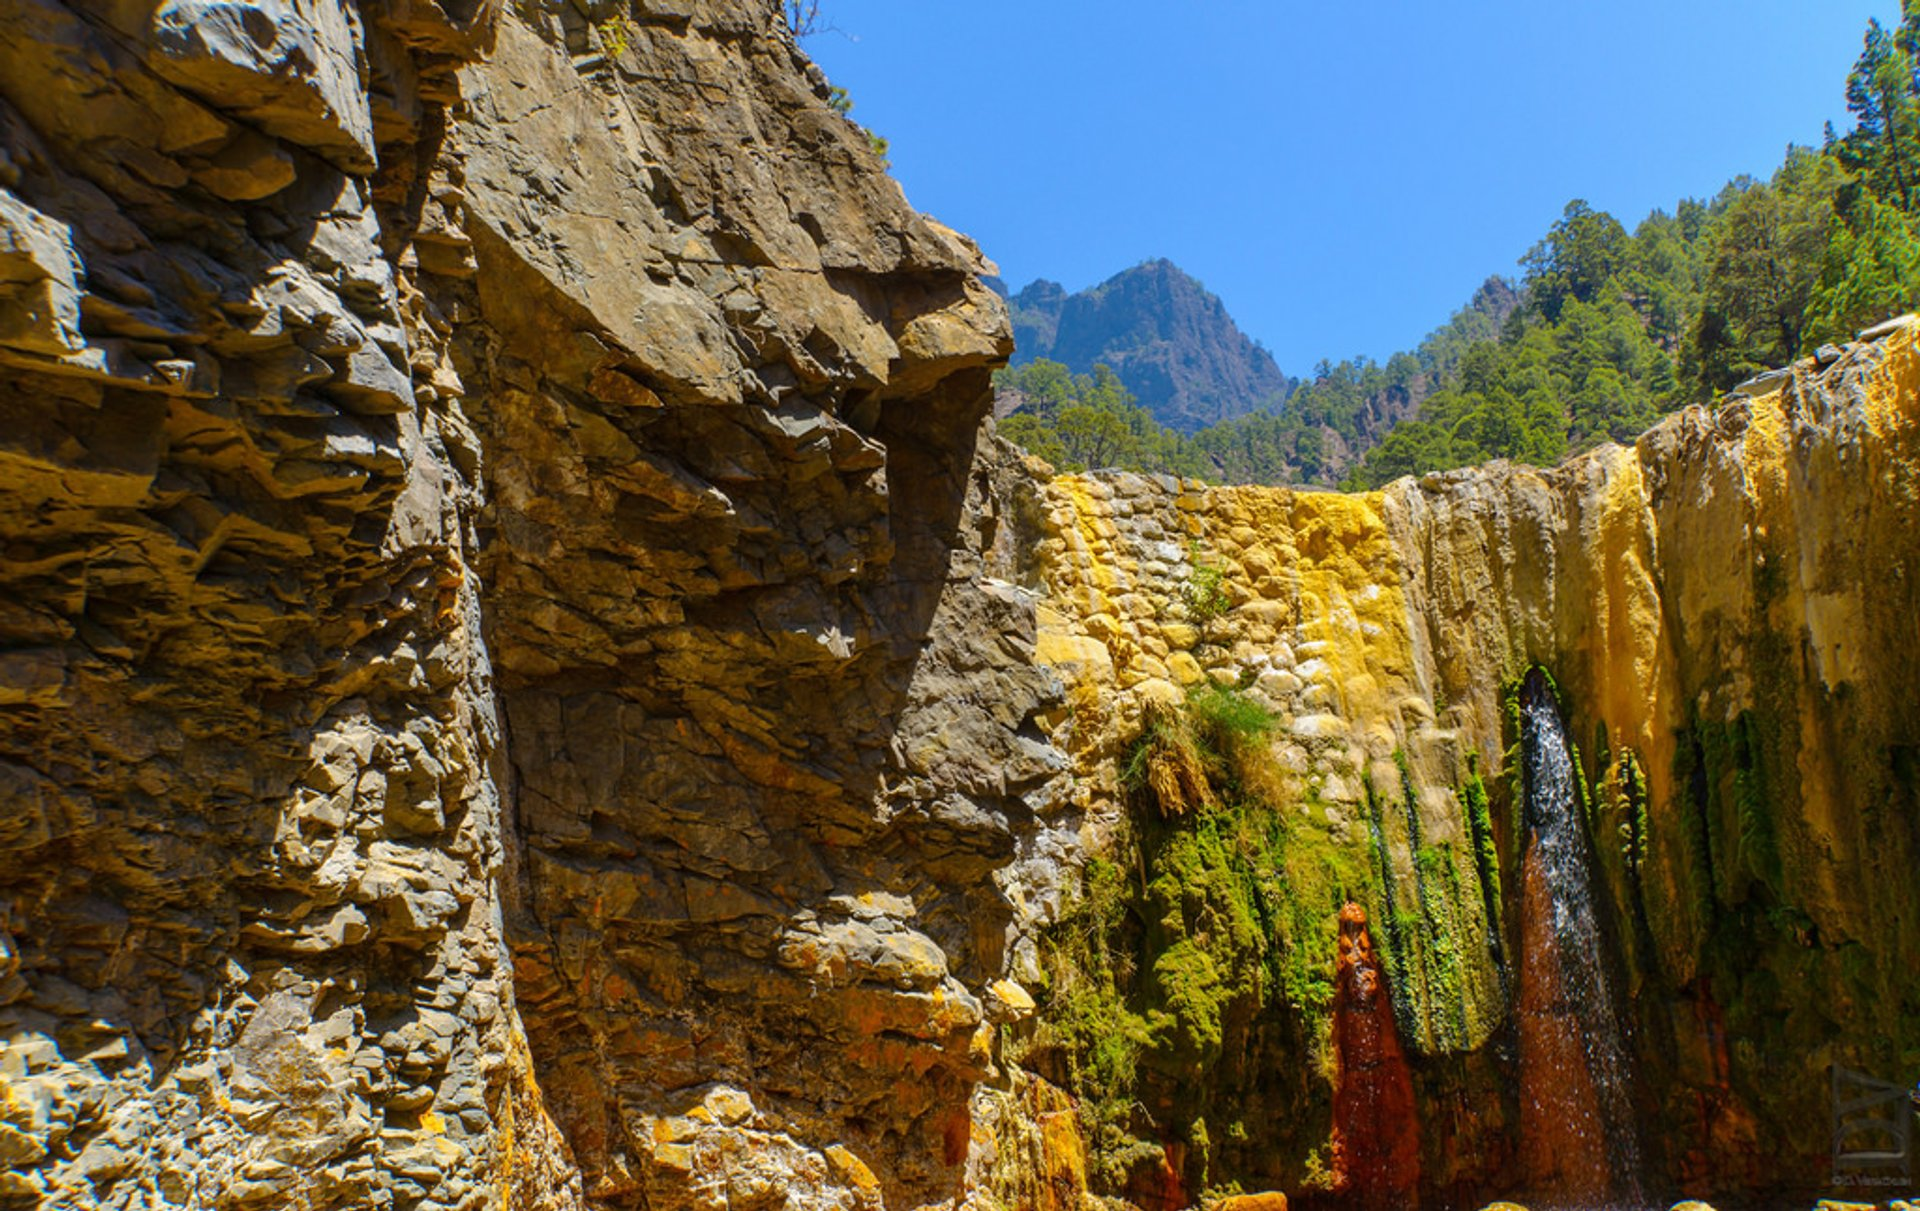 Cascade of Colours in Caldera de Taburiente in Canary Islands - Best Season 2020